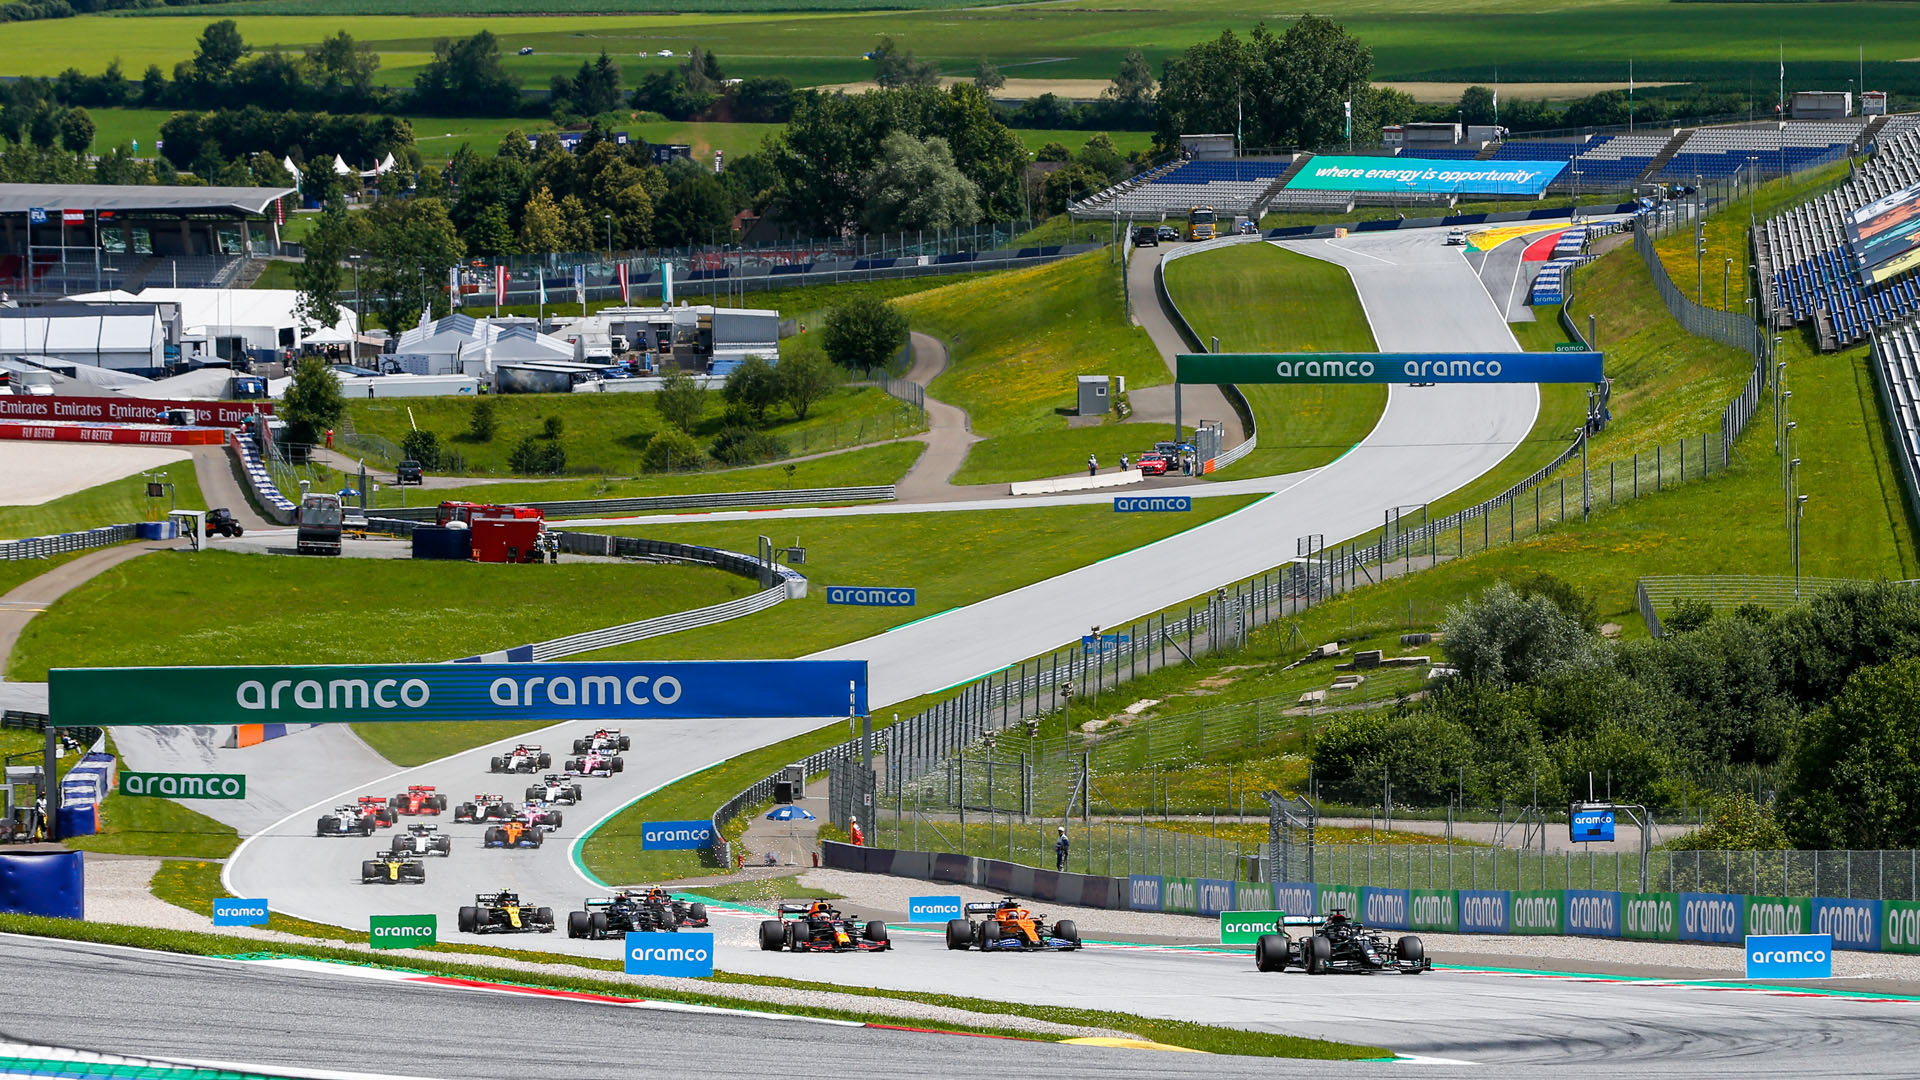 2021 F1 race calendar updated, as Turkey drops off and extra Austria race added